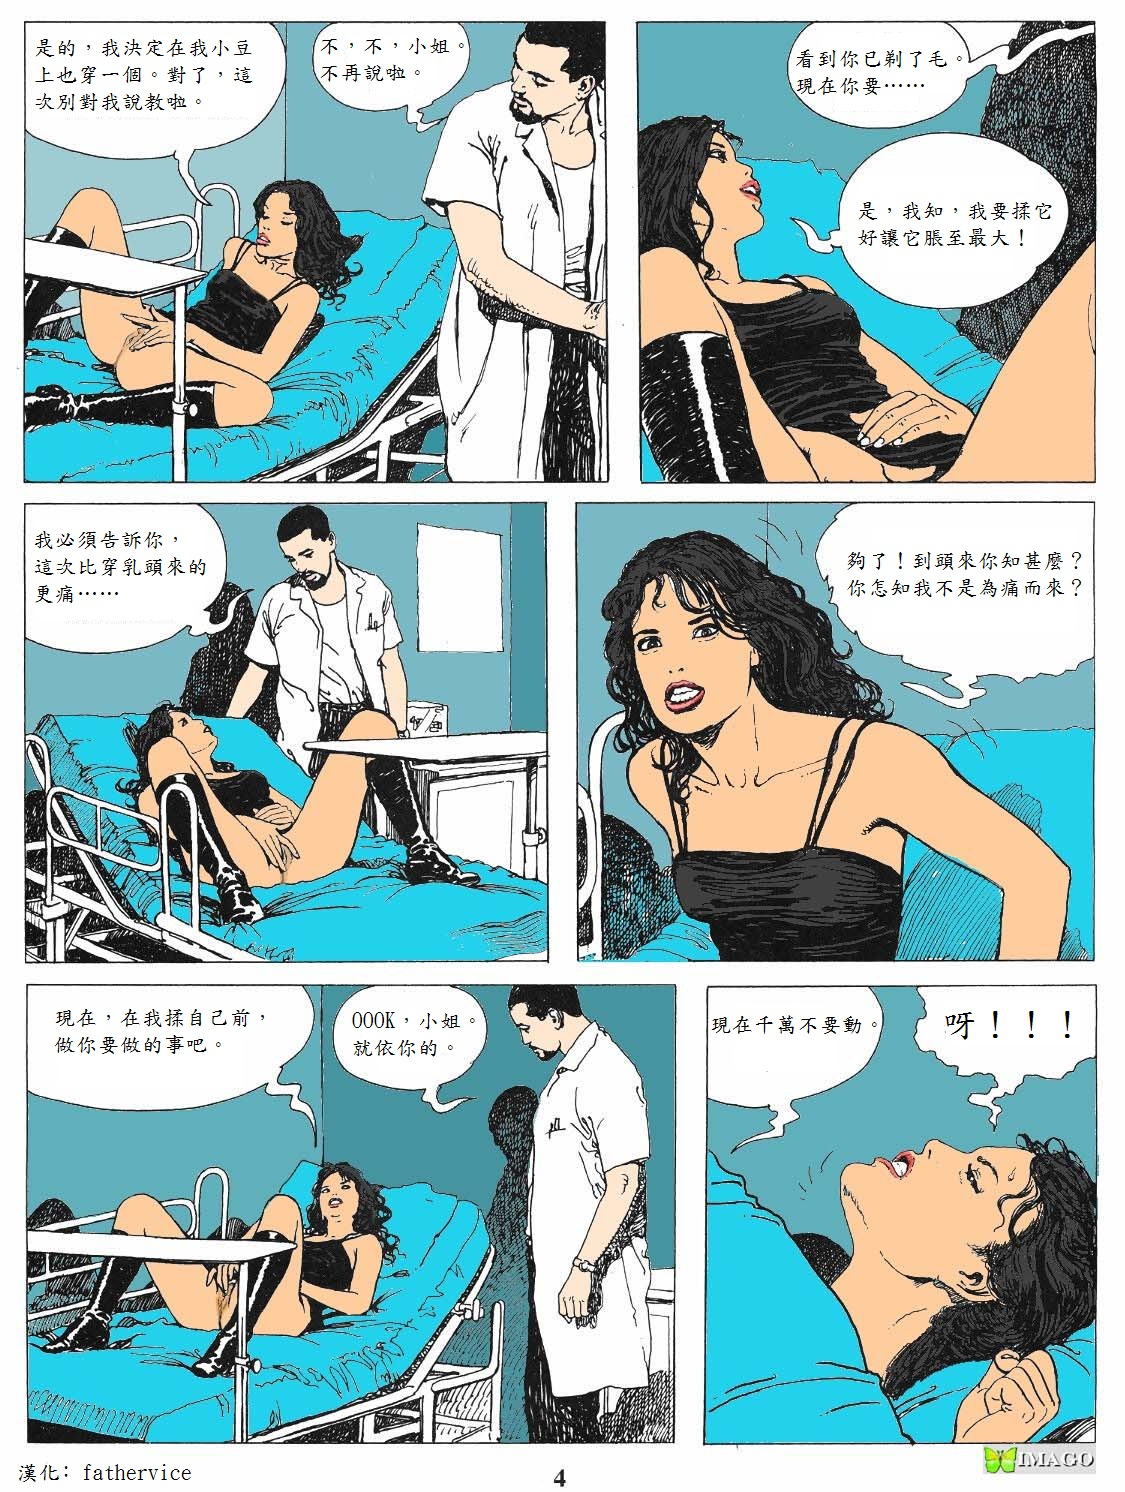 [Milo Manara] The Piercing [Chinese]